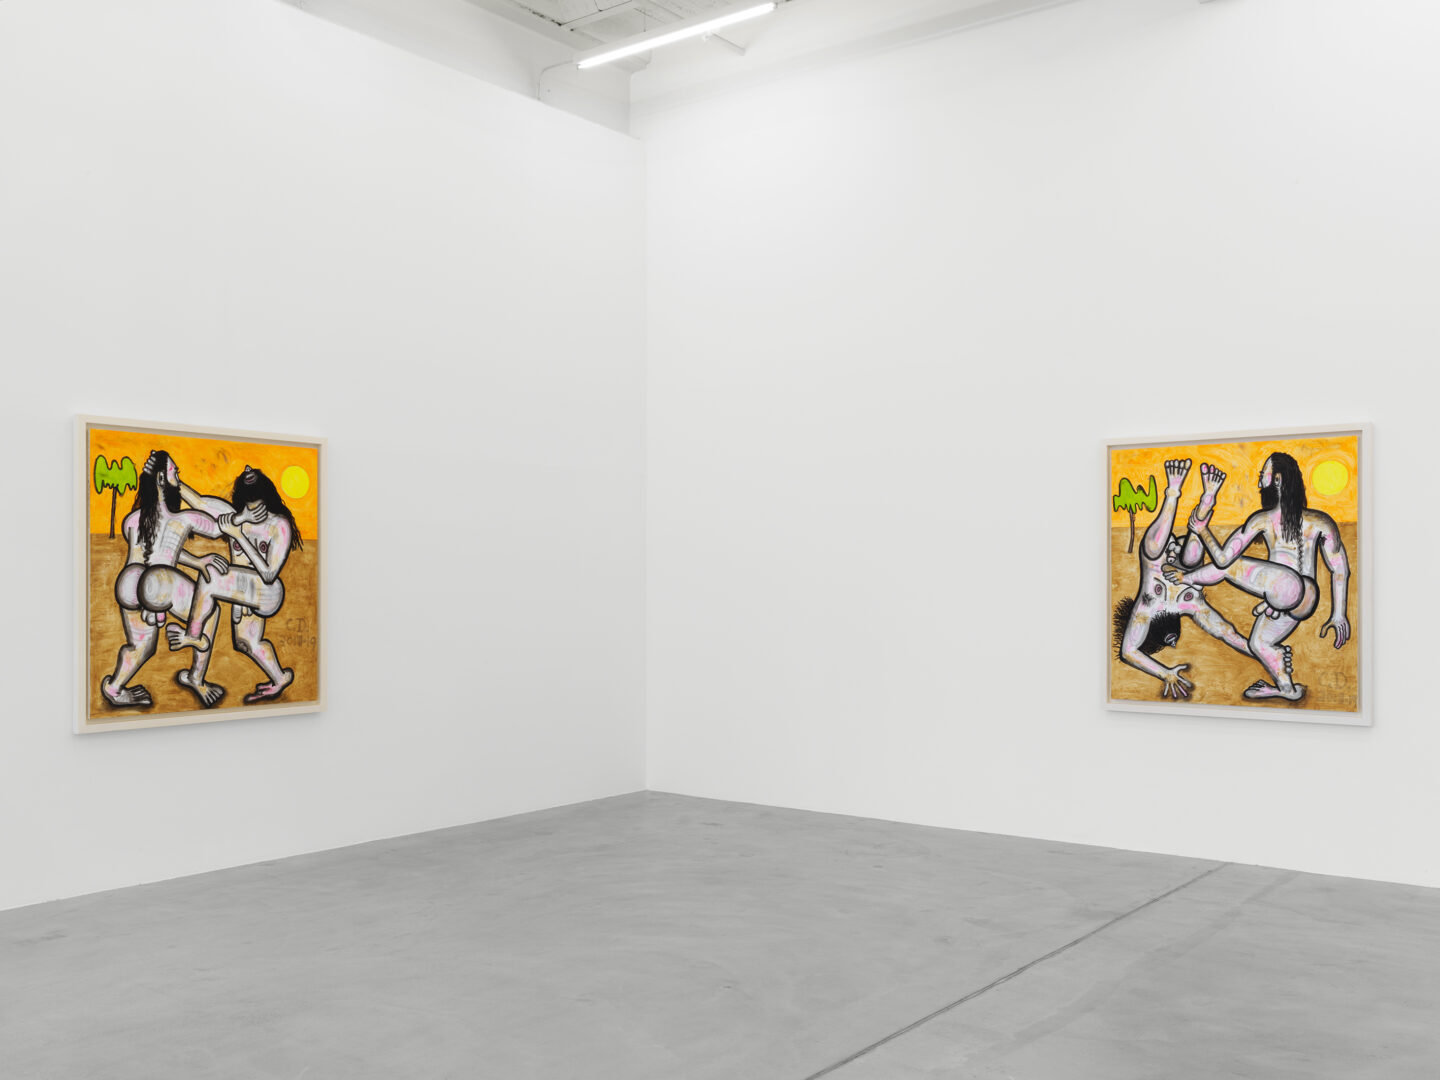 Exhibition View Carroll Dunham Soloshow «Recent Paintings» at Galerie Eva Presenhuber, Zurich, 2019 / Photo: Stefan Altenburger / © Carroll Dunham / Courtesy the artist and Galerie Eva Presenhuber, Zurich / New York